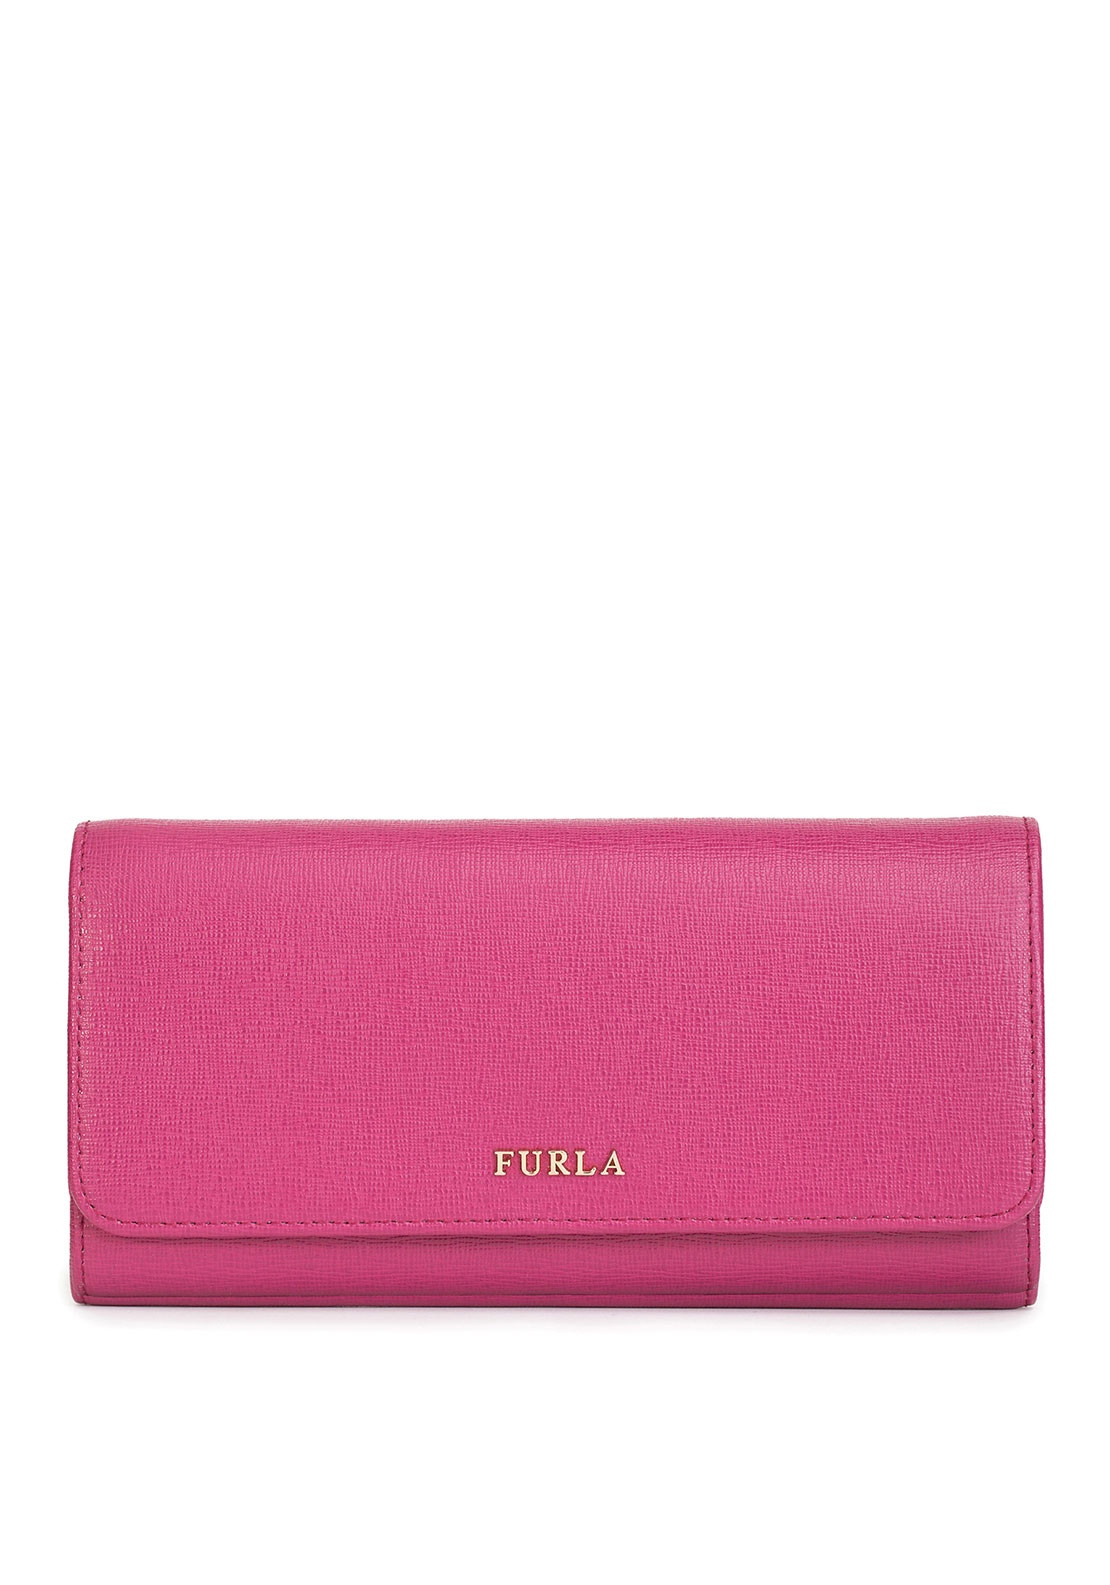 Furla Babylon Leather Drop Down Purse, Pink